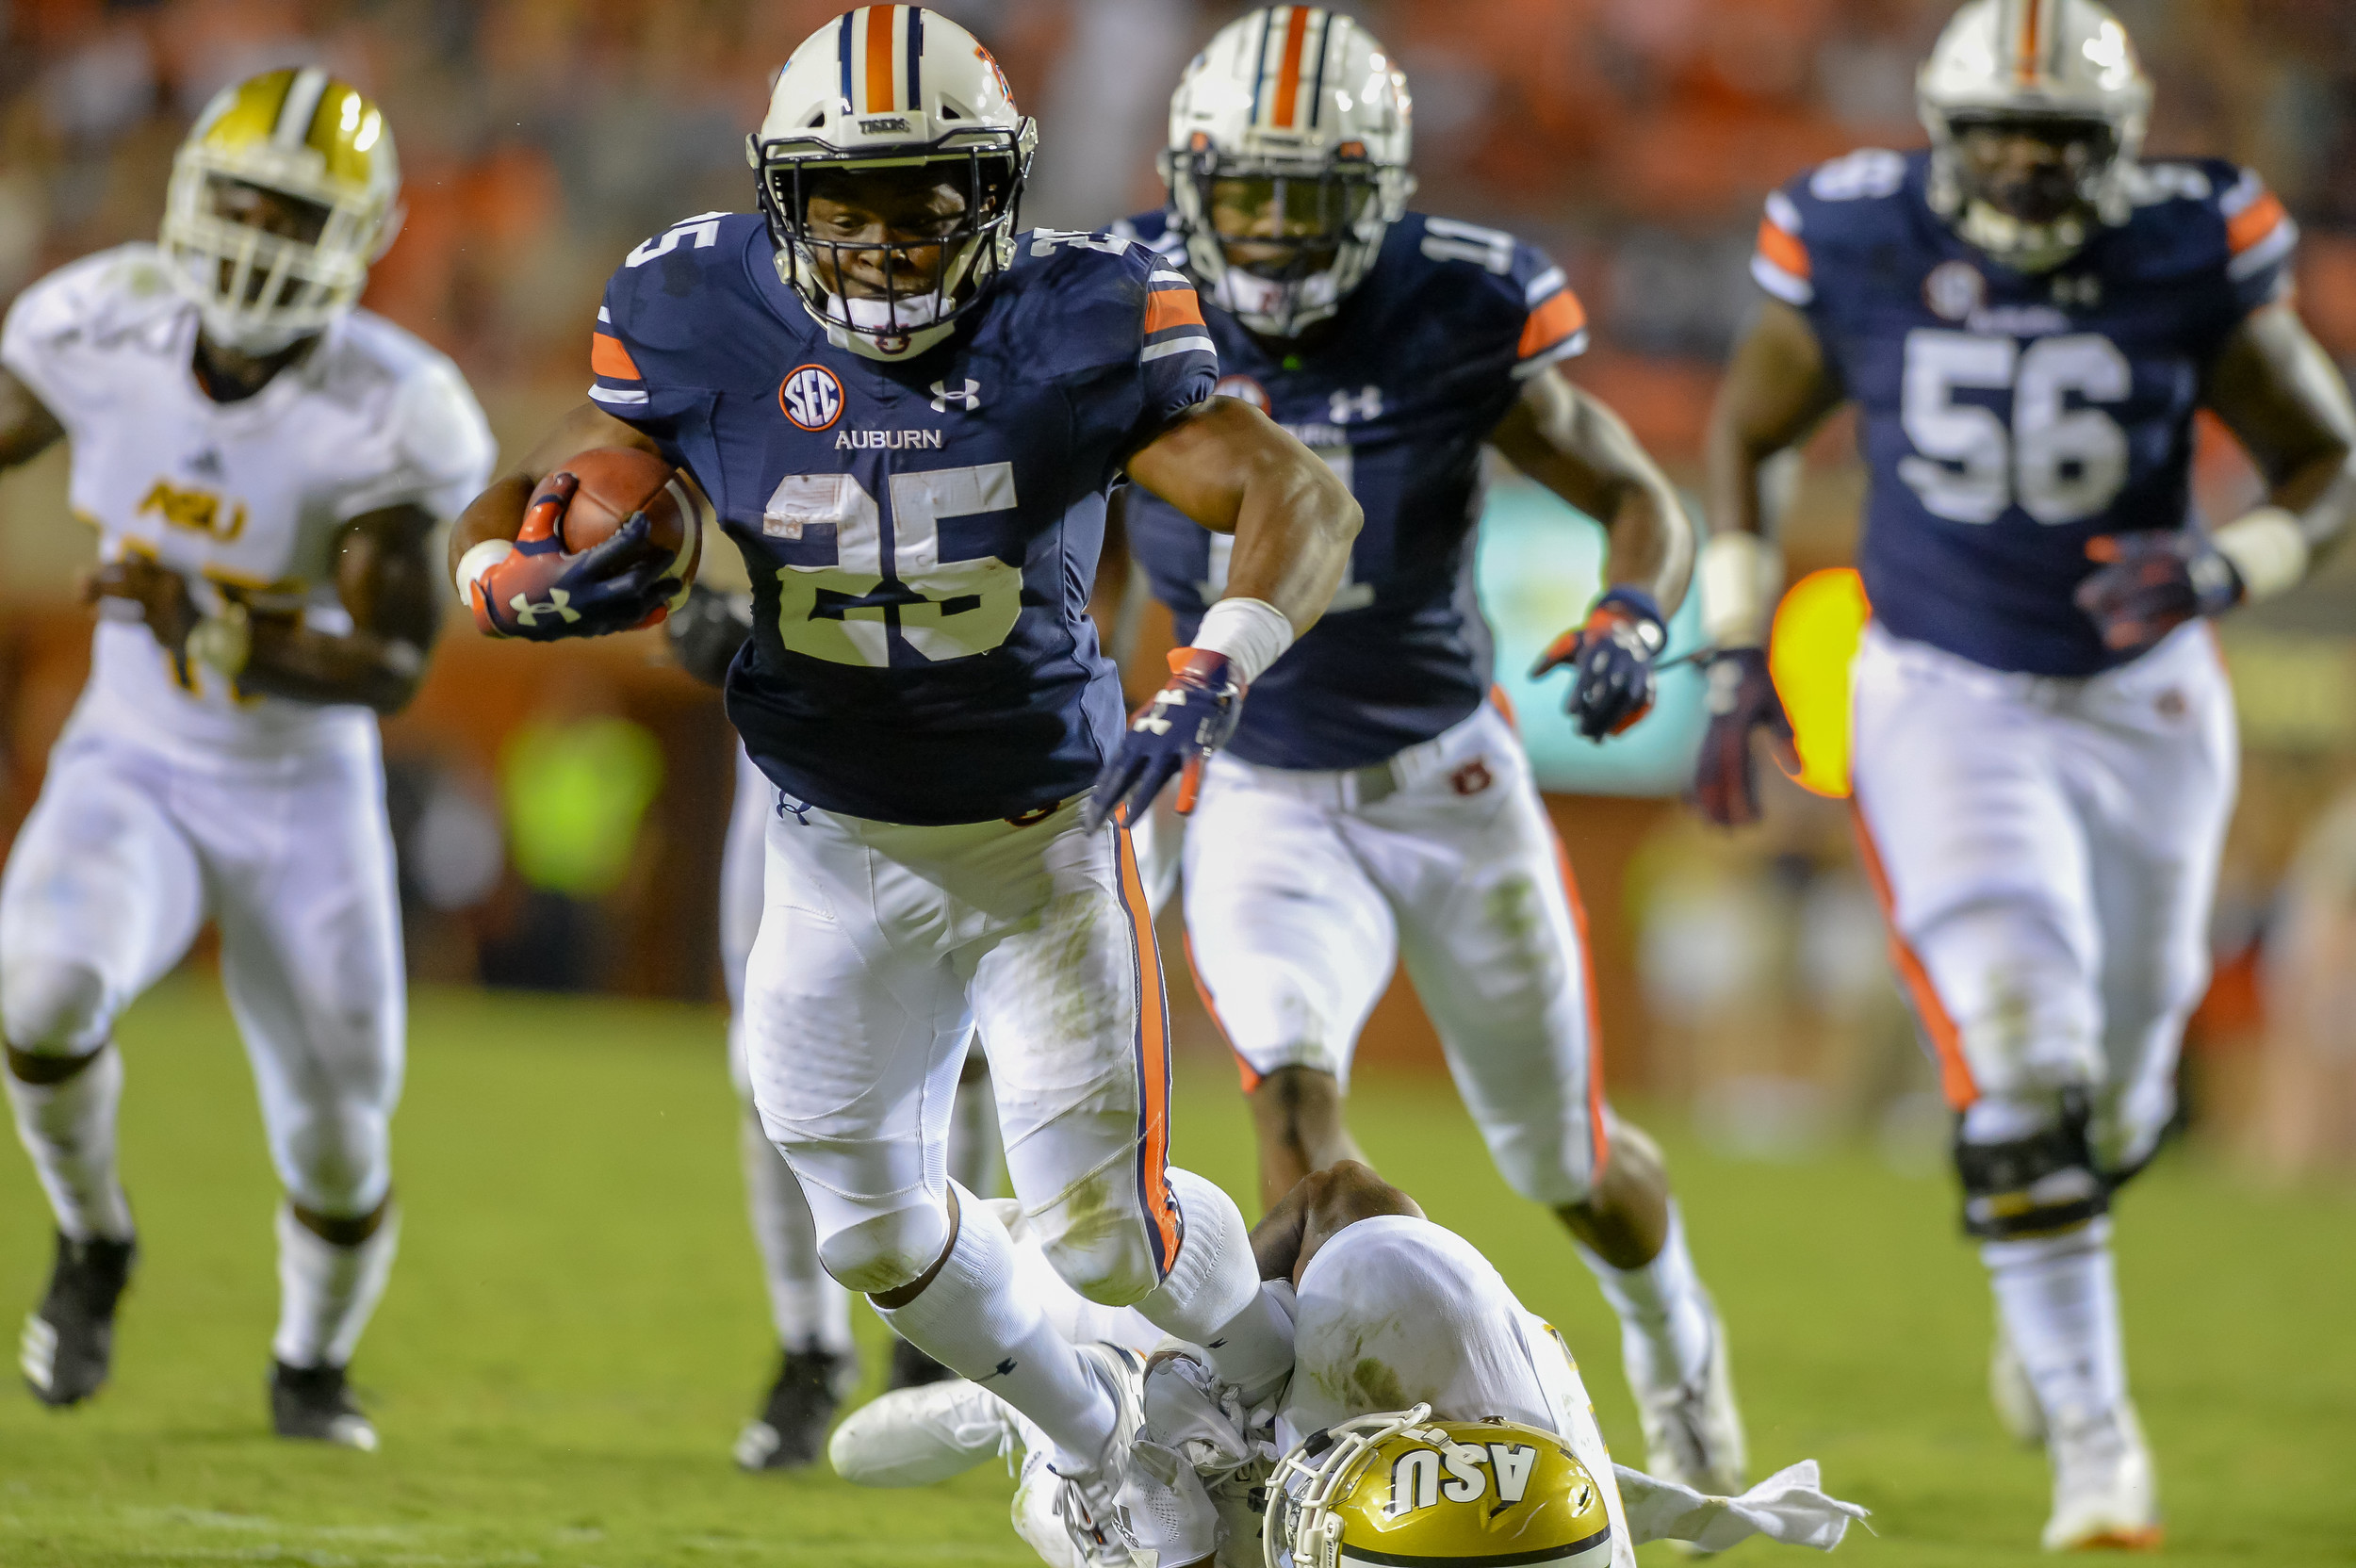 Auburn Tigers running back Shaun Shivers (25) runs during the second half of Saturday's game, at Jordan Hare Stadium in Auburn Atlanta. (Contributed by Jeff Johnsey)